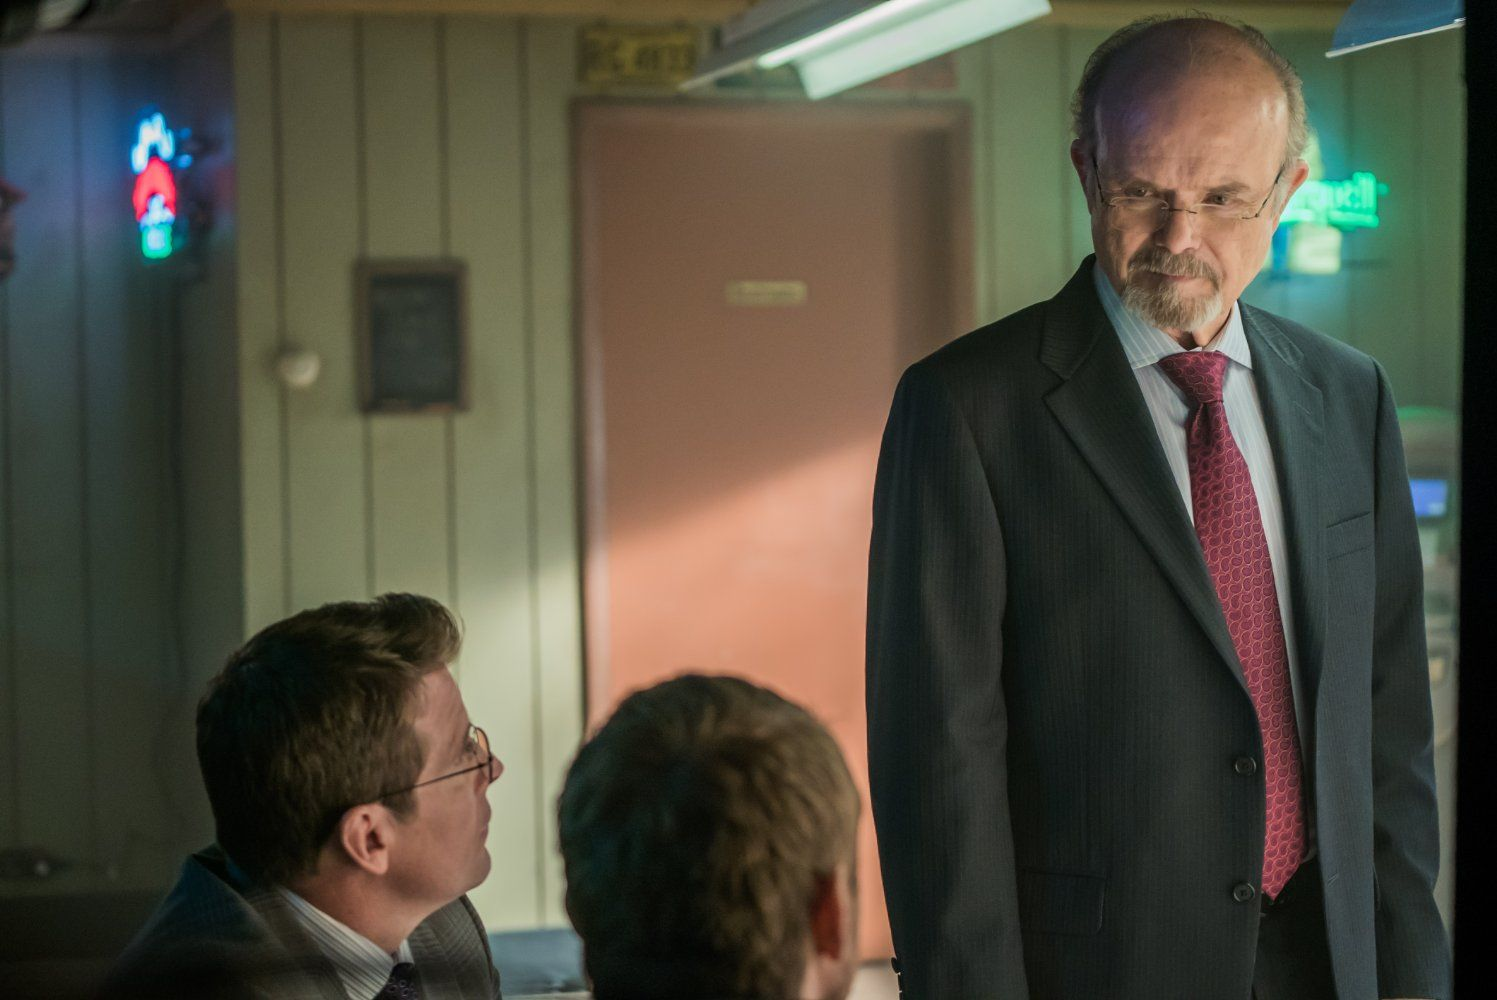 Kurtwood Smith in Patriot Series (9) Trailer images